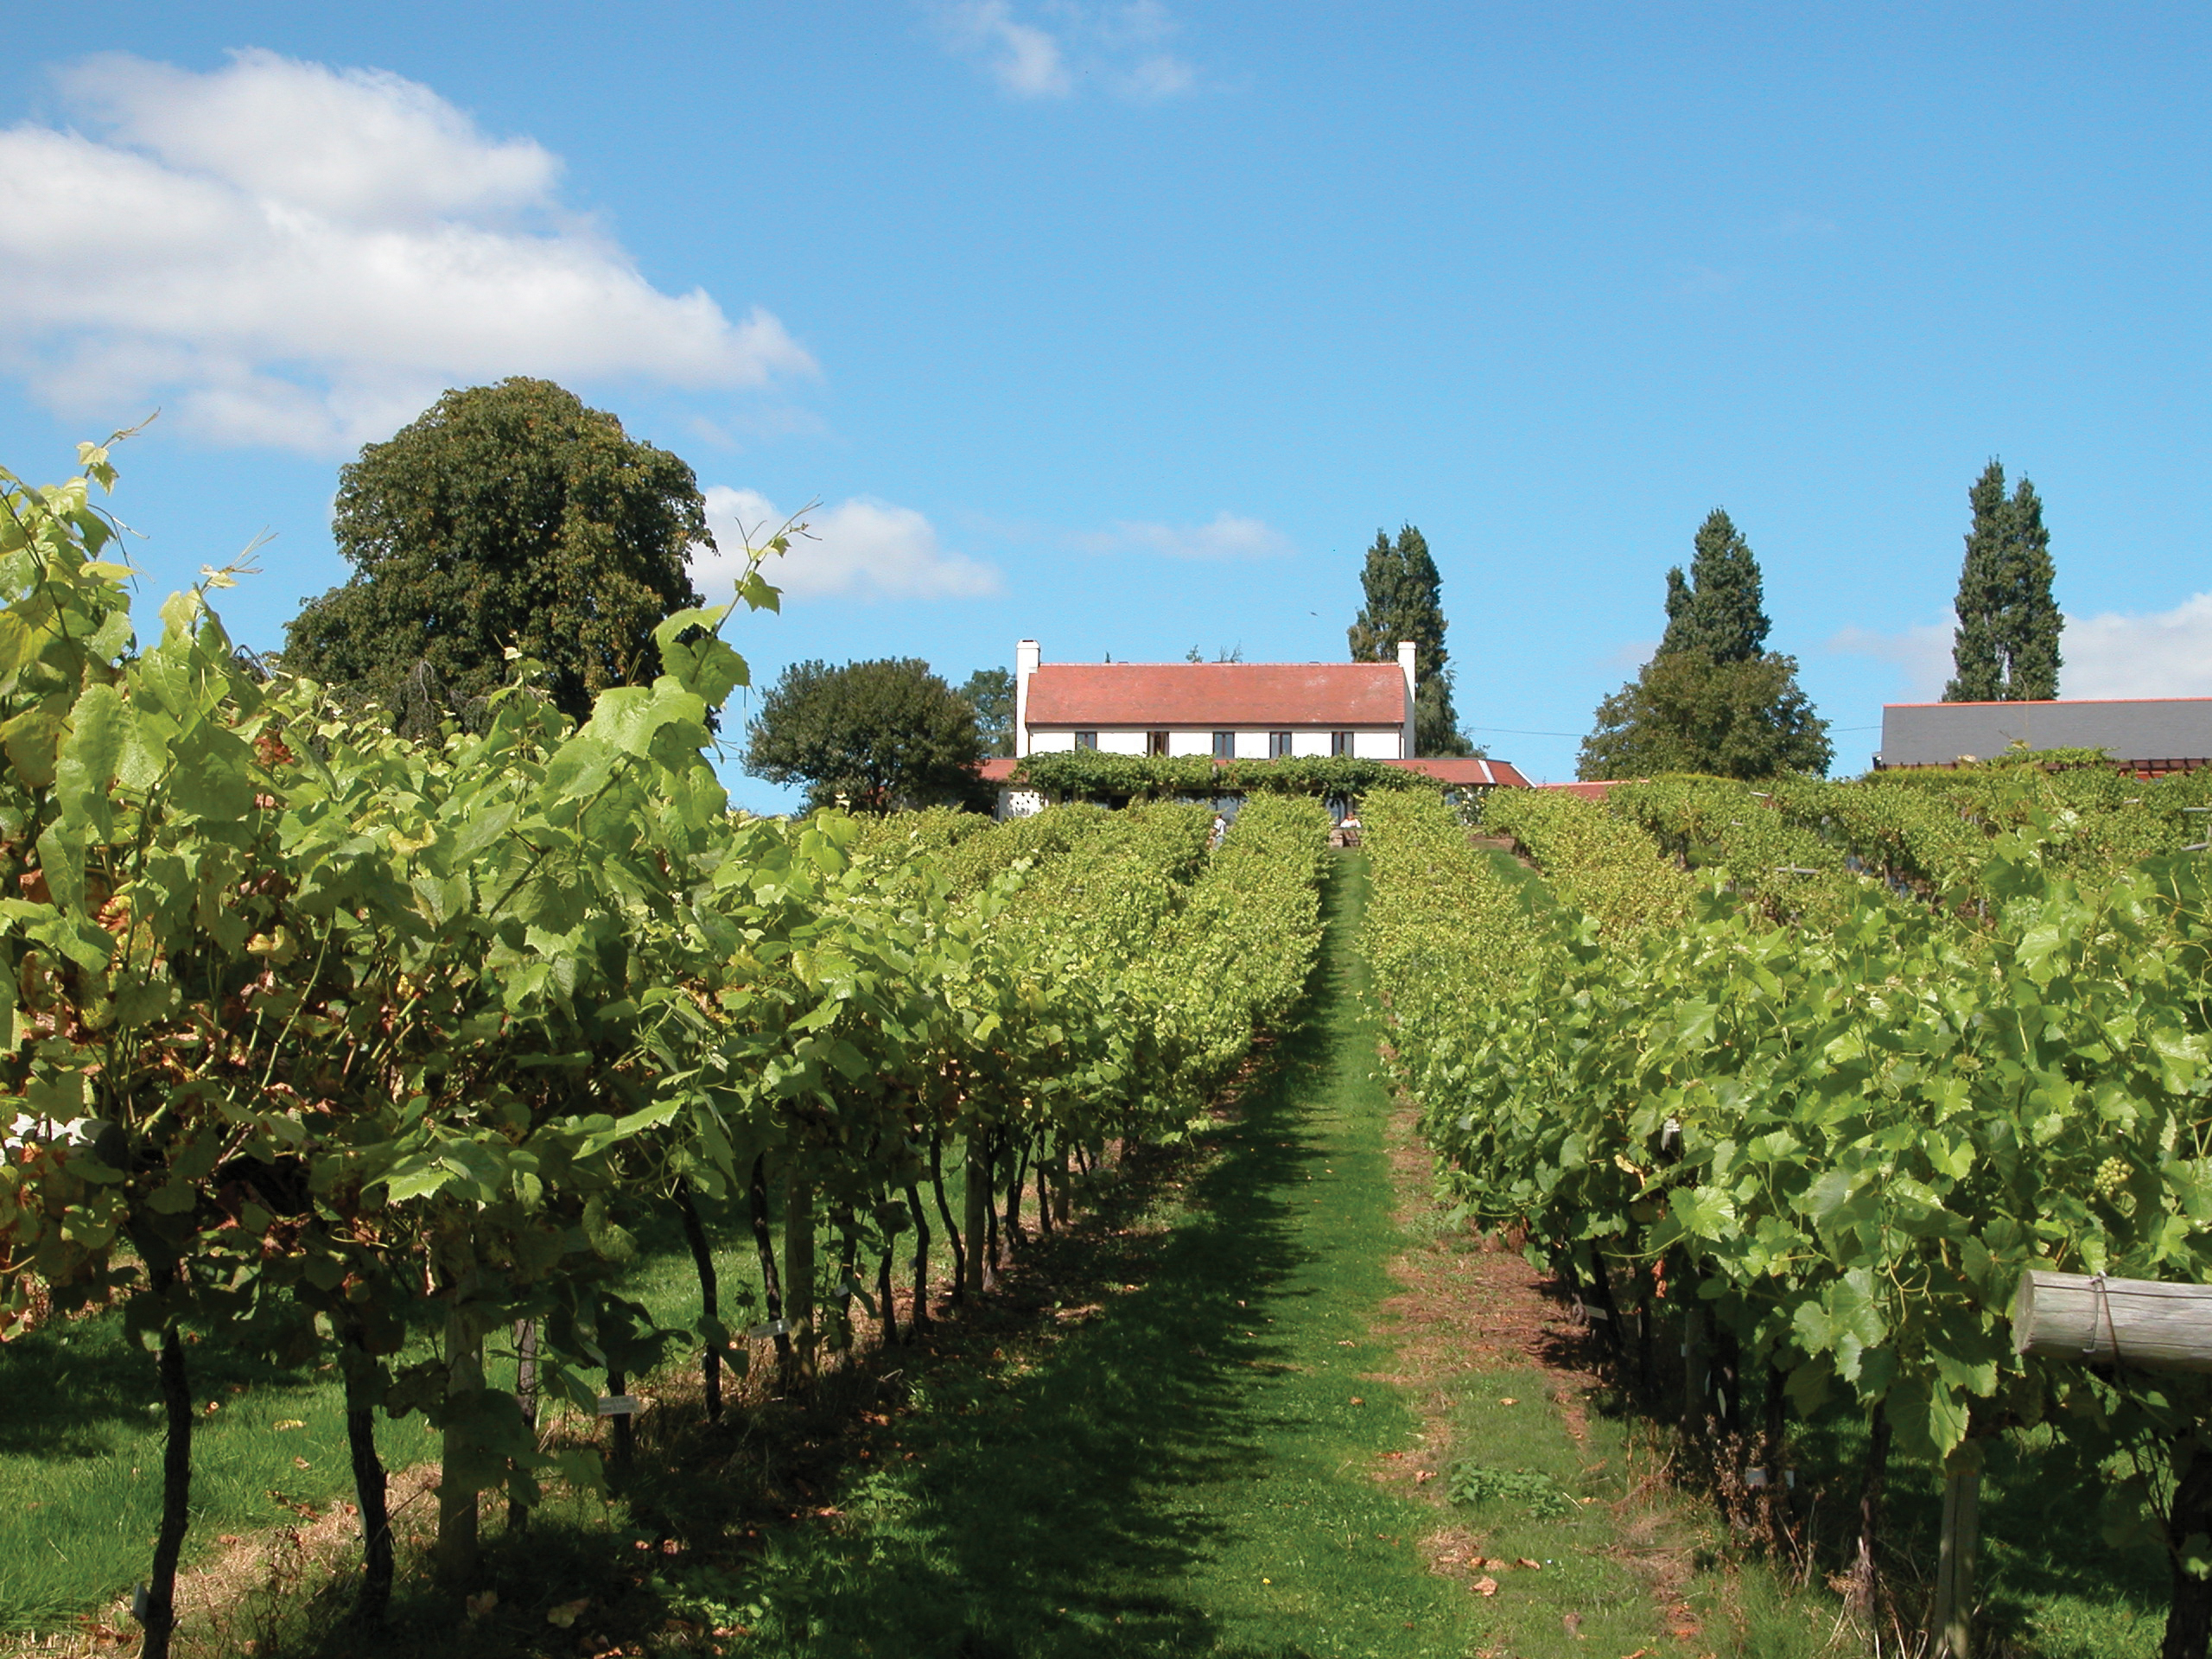 10 of the best vineyards to visit in Britain